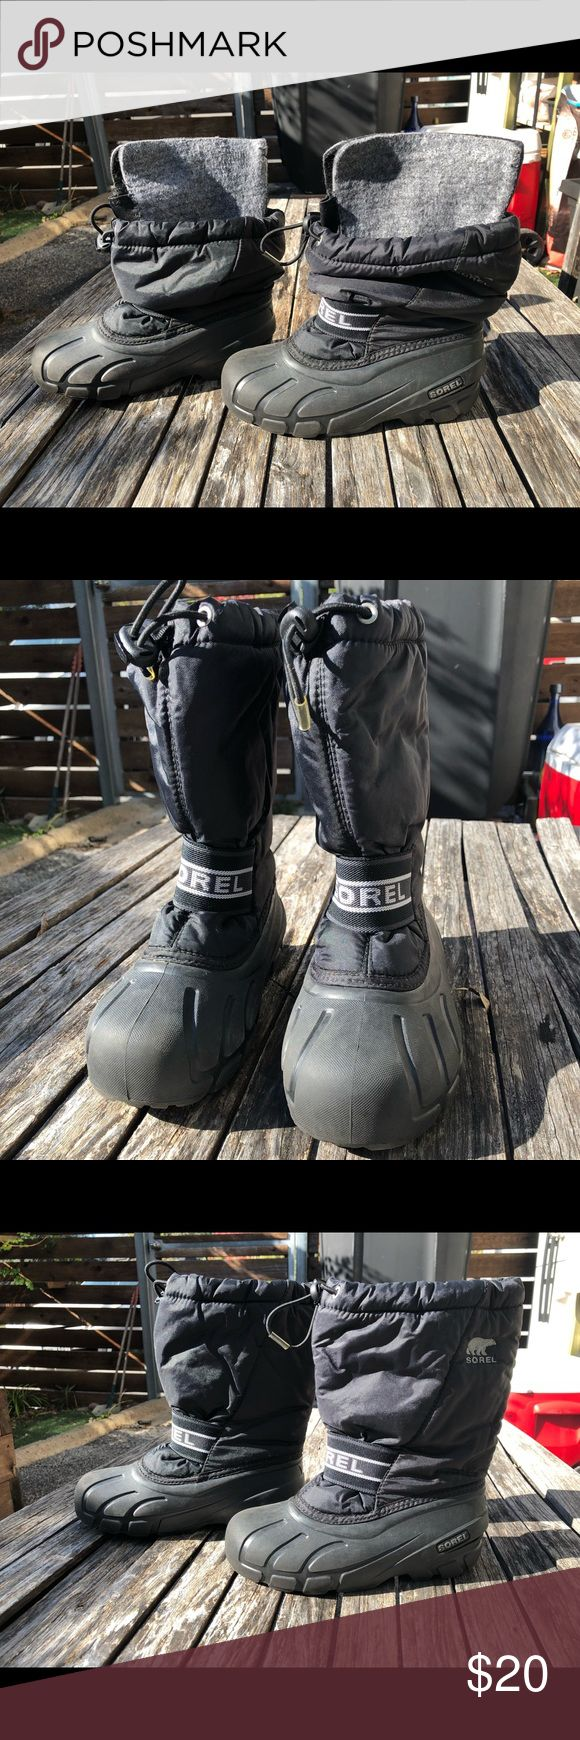 SOREL SNOW BOOTS Kids SOREL snow boots with removable liner. Excellent condition only worn 2-3x before child outgrew. Sorel Shoes Rain & Snow Boots